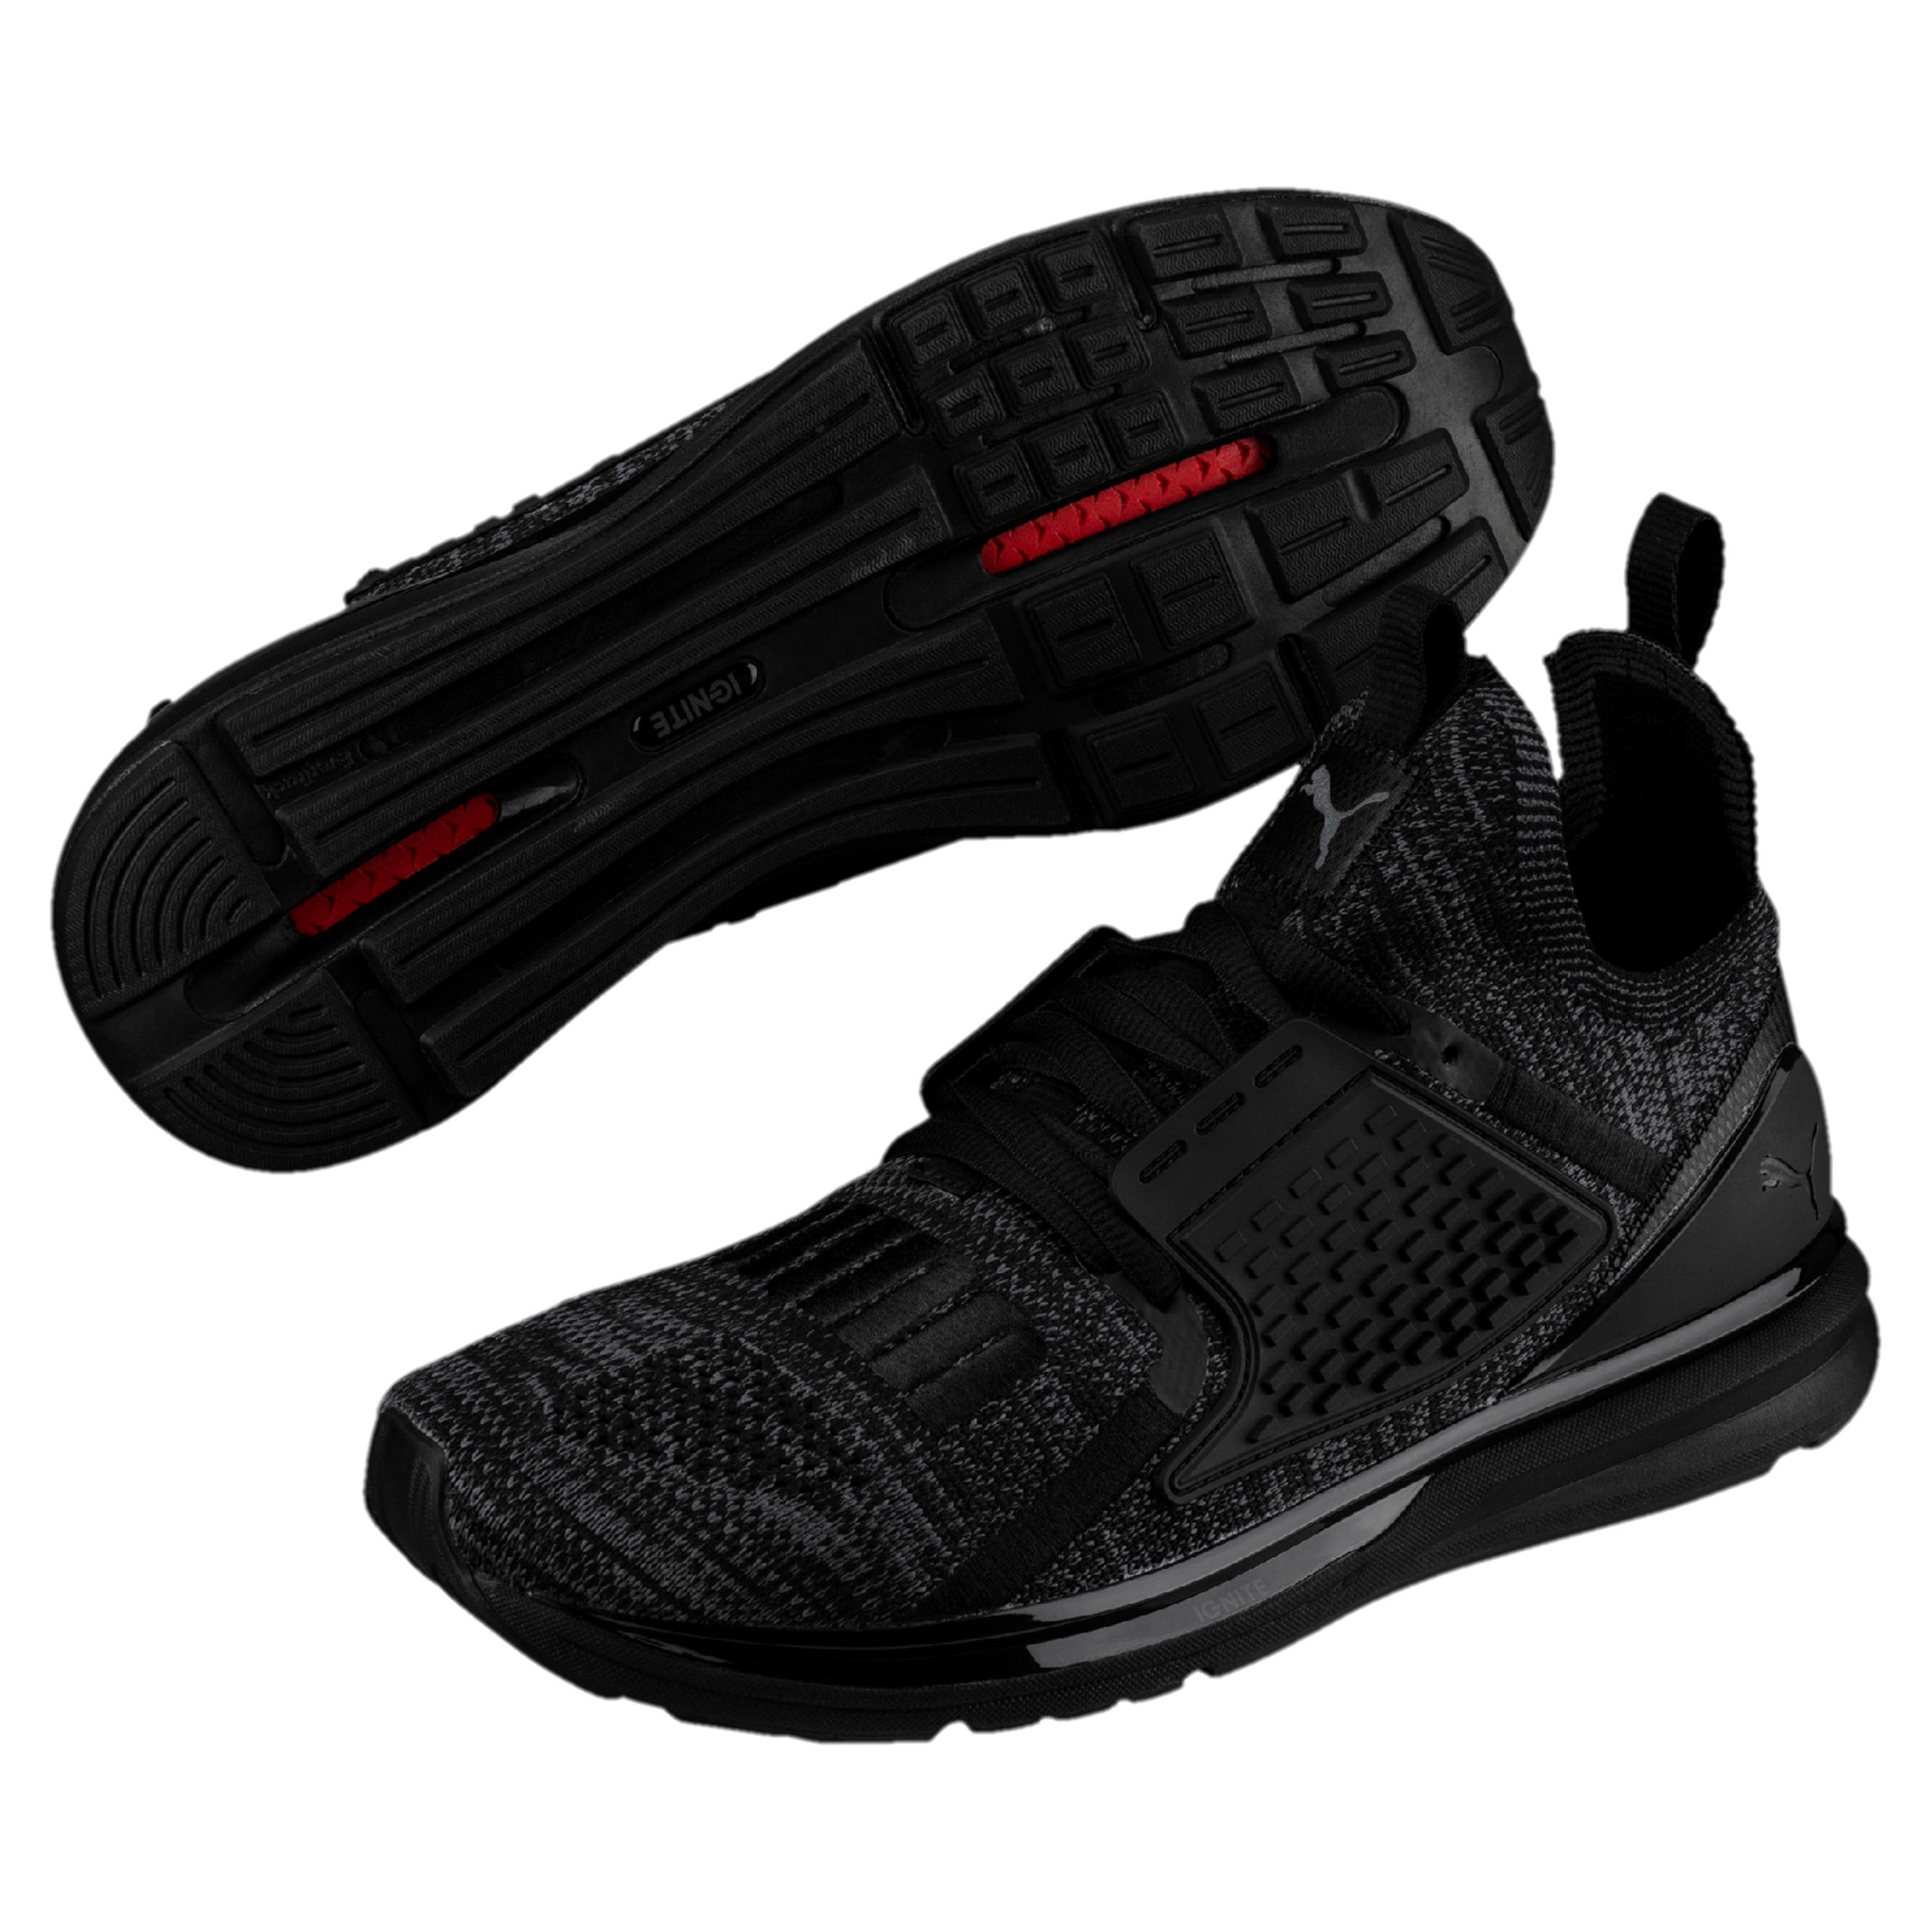 IGNITE Limitless 2 evoKNIT Puma Black-Ir